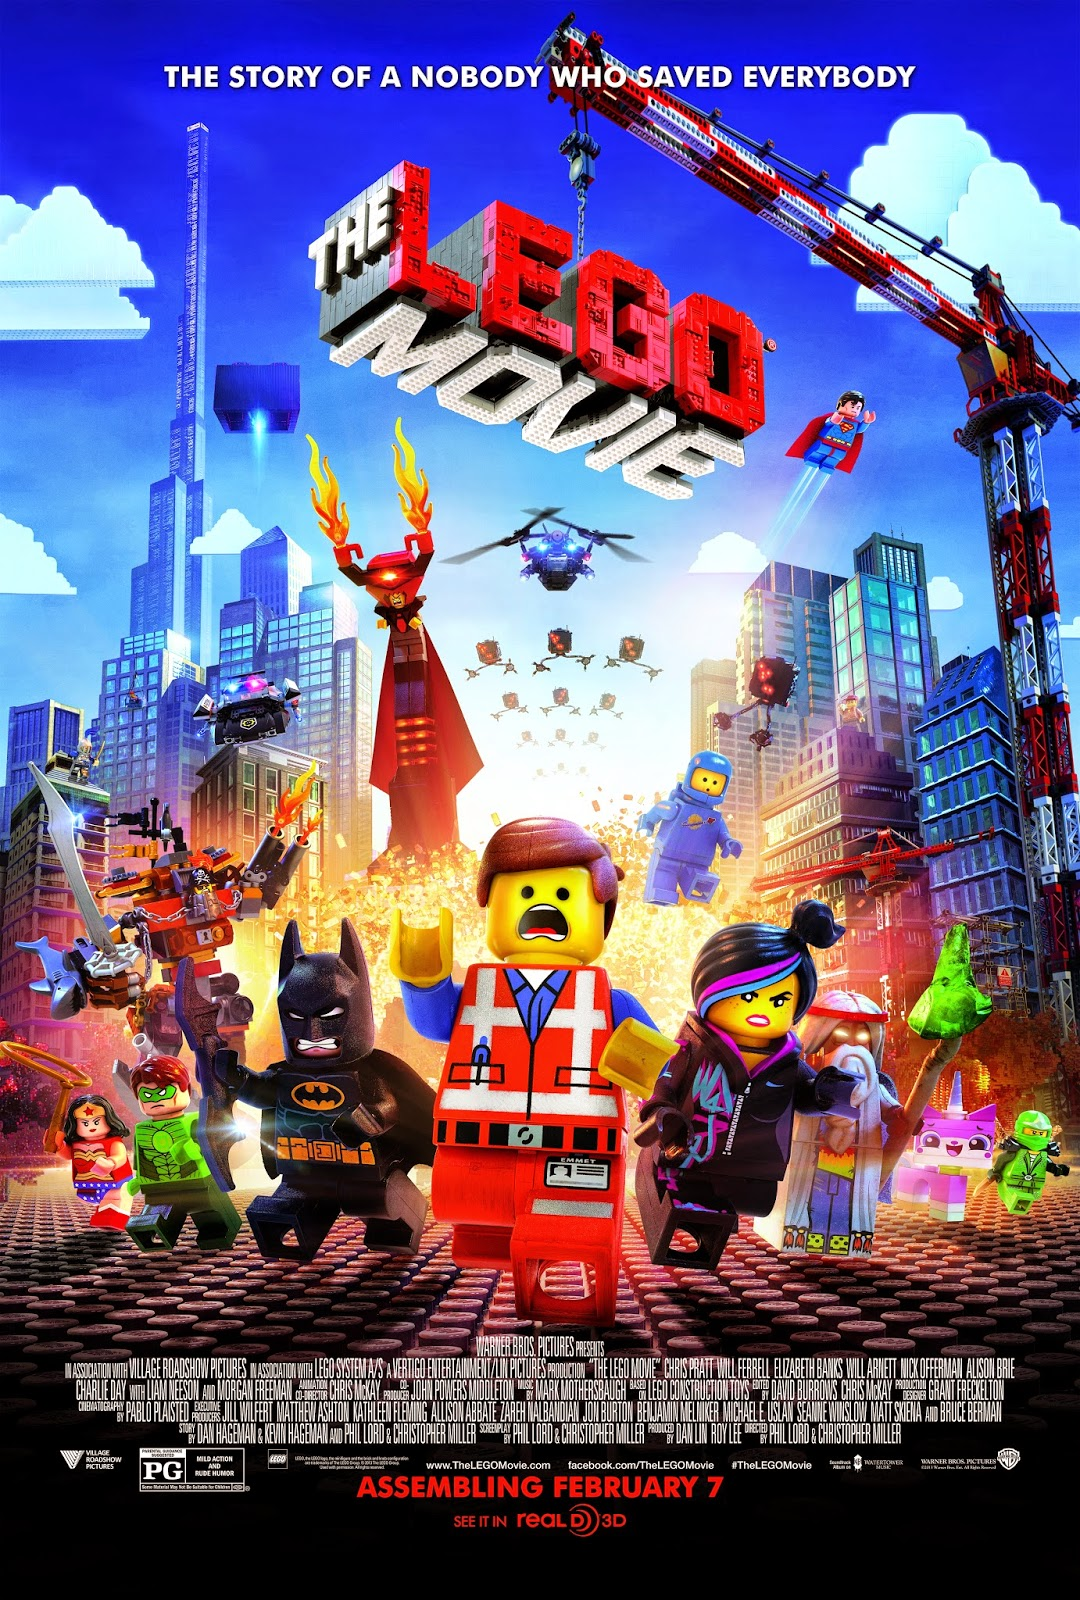 'LEGO Movie' is a spectacularly built animated feature